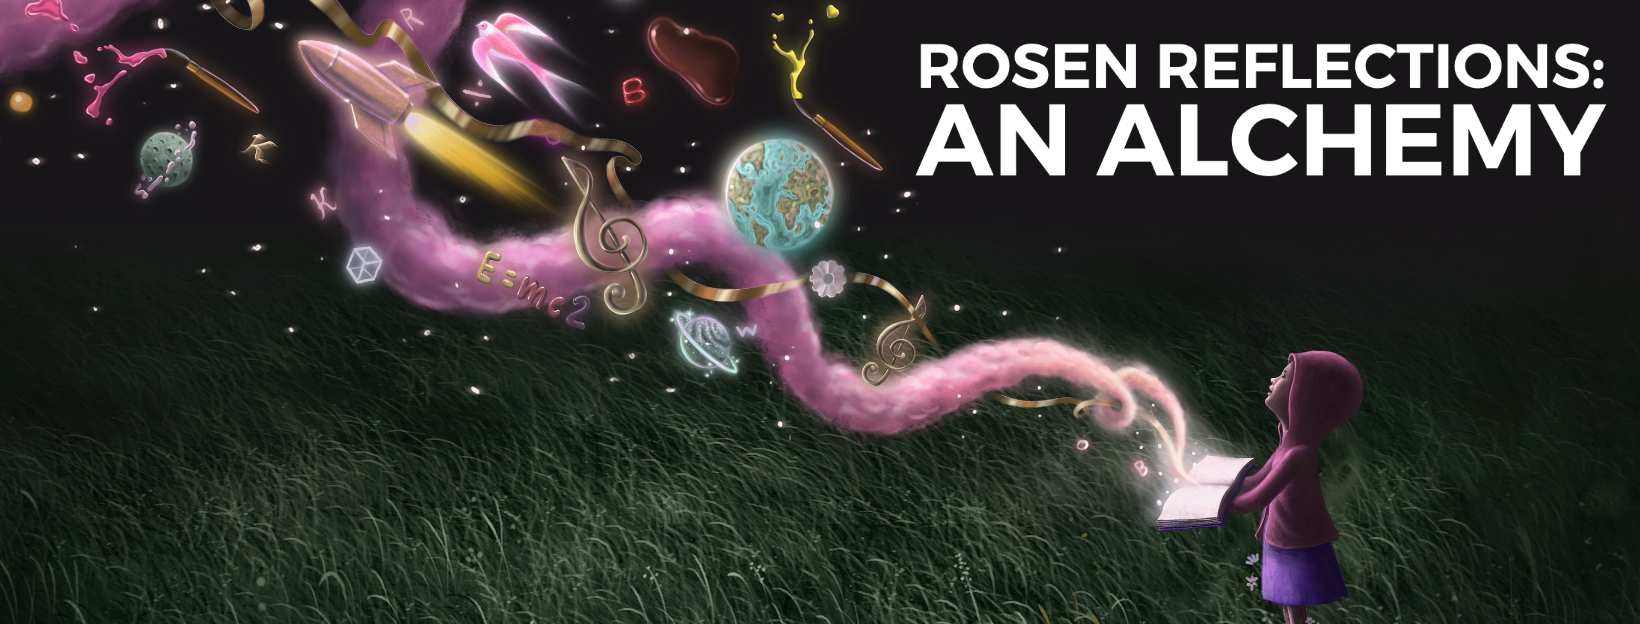 "Image linking to an article titled ""Rosen Reflections: An Alchemy"". Digital art of a dark grassy field, with a small child in the bottom right who wears a hoodie and skirt. The child holds an open book, out of which spirals a mystical line of smoke. Circling the smoke are various things, such as a globe, music notes, rocket, pen, the moon, a cube, and the formula E=mc^2."